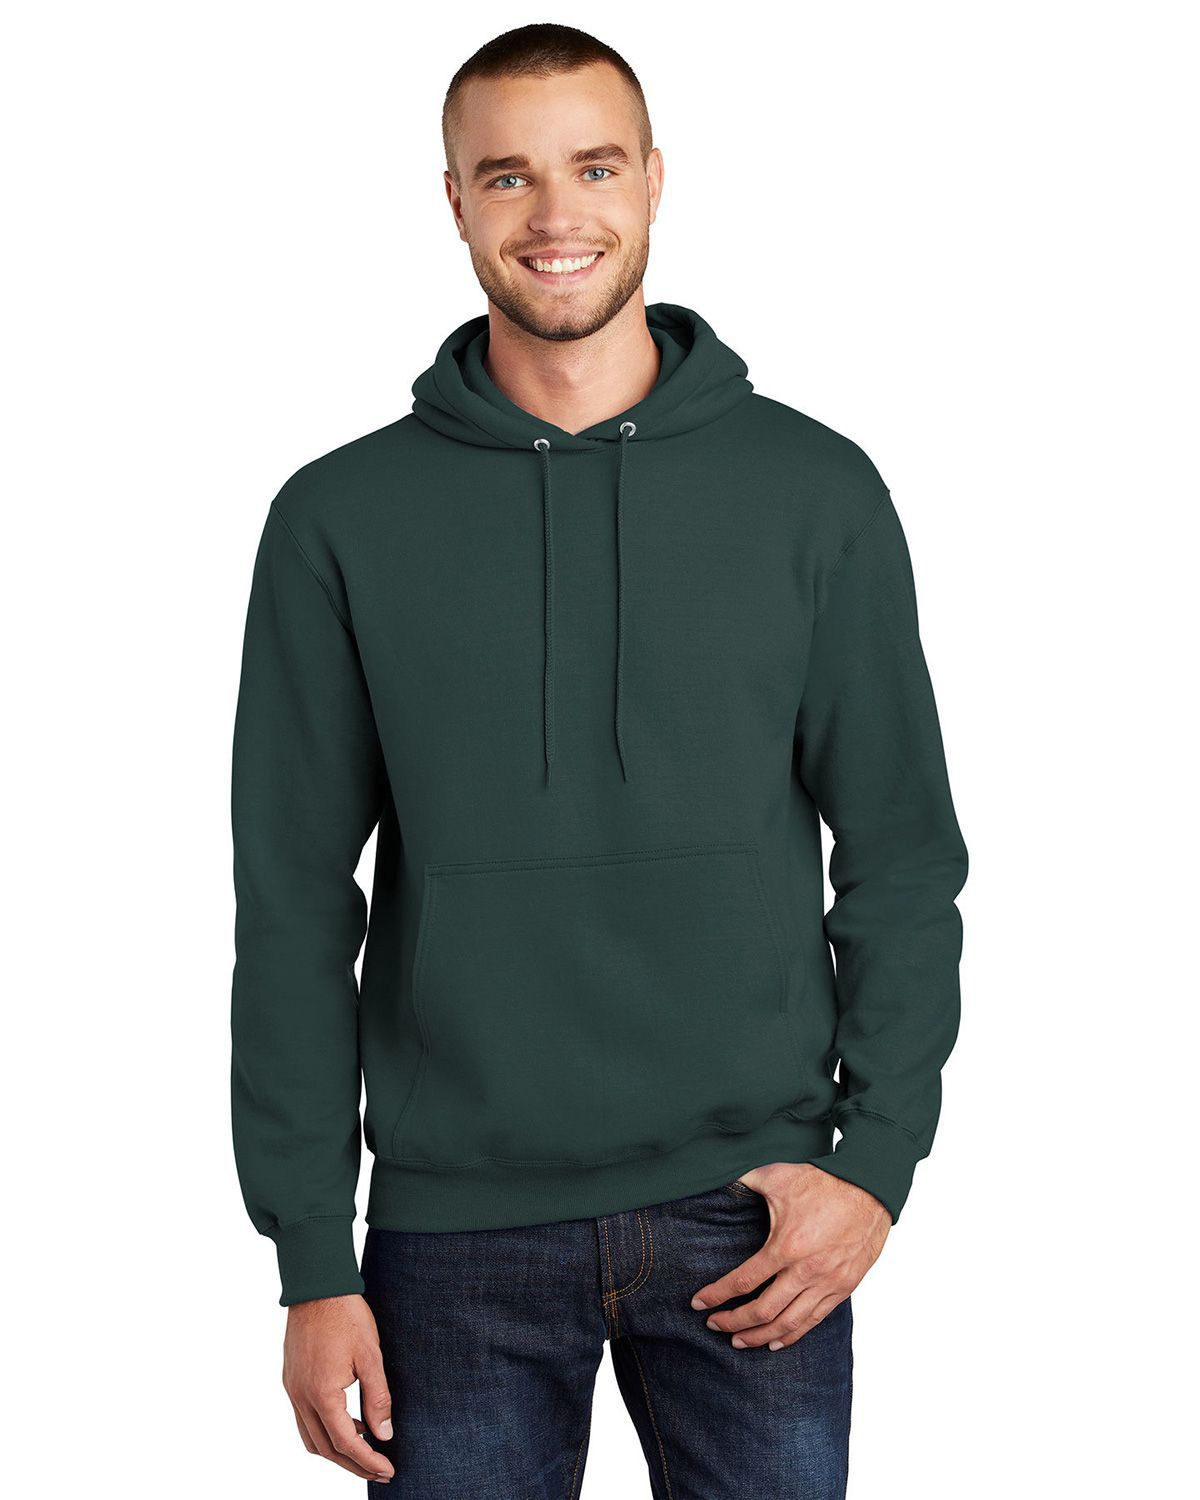 Port & Company® -  Essential Fleece Pullover Hooded Sweatshirt.  PC90H Dark Green L PC90H